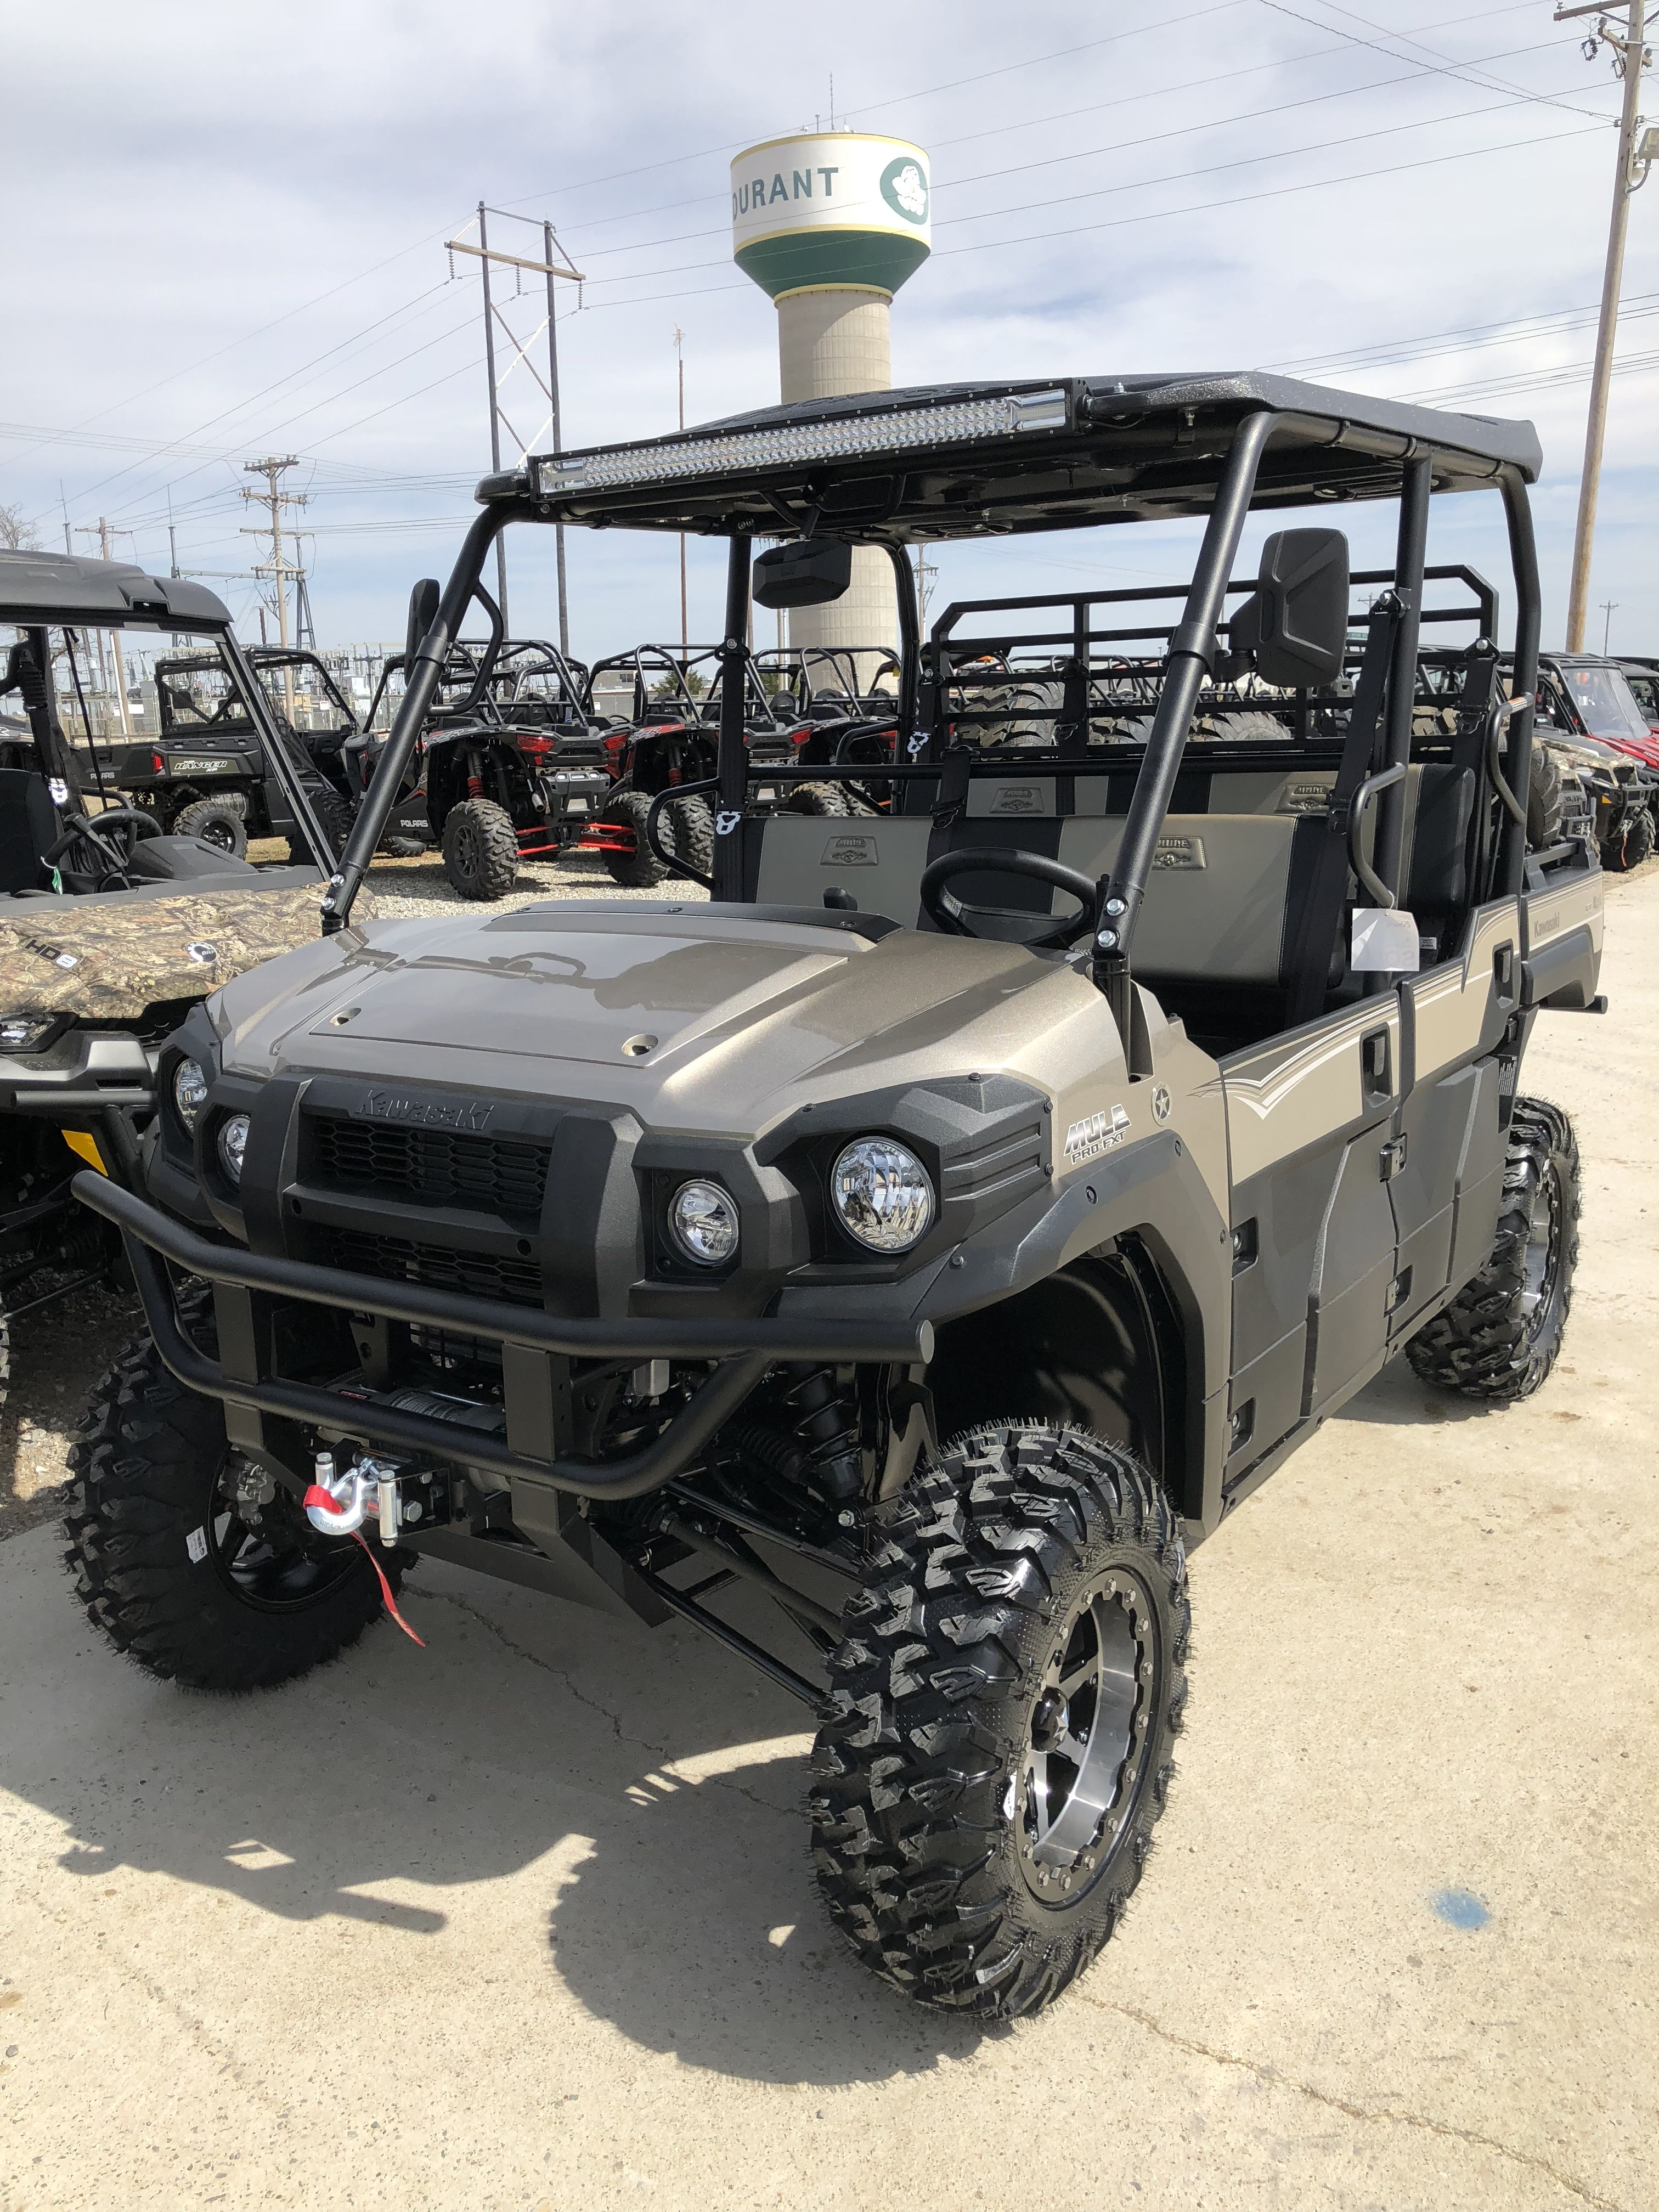 My 2018 Mule Pro Fxt Ranch Edition Awesome Atv Gear Offroad Vehicles Kawasaki Mule